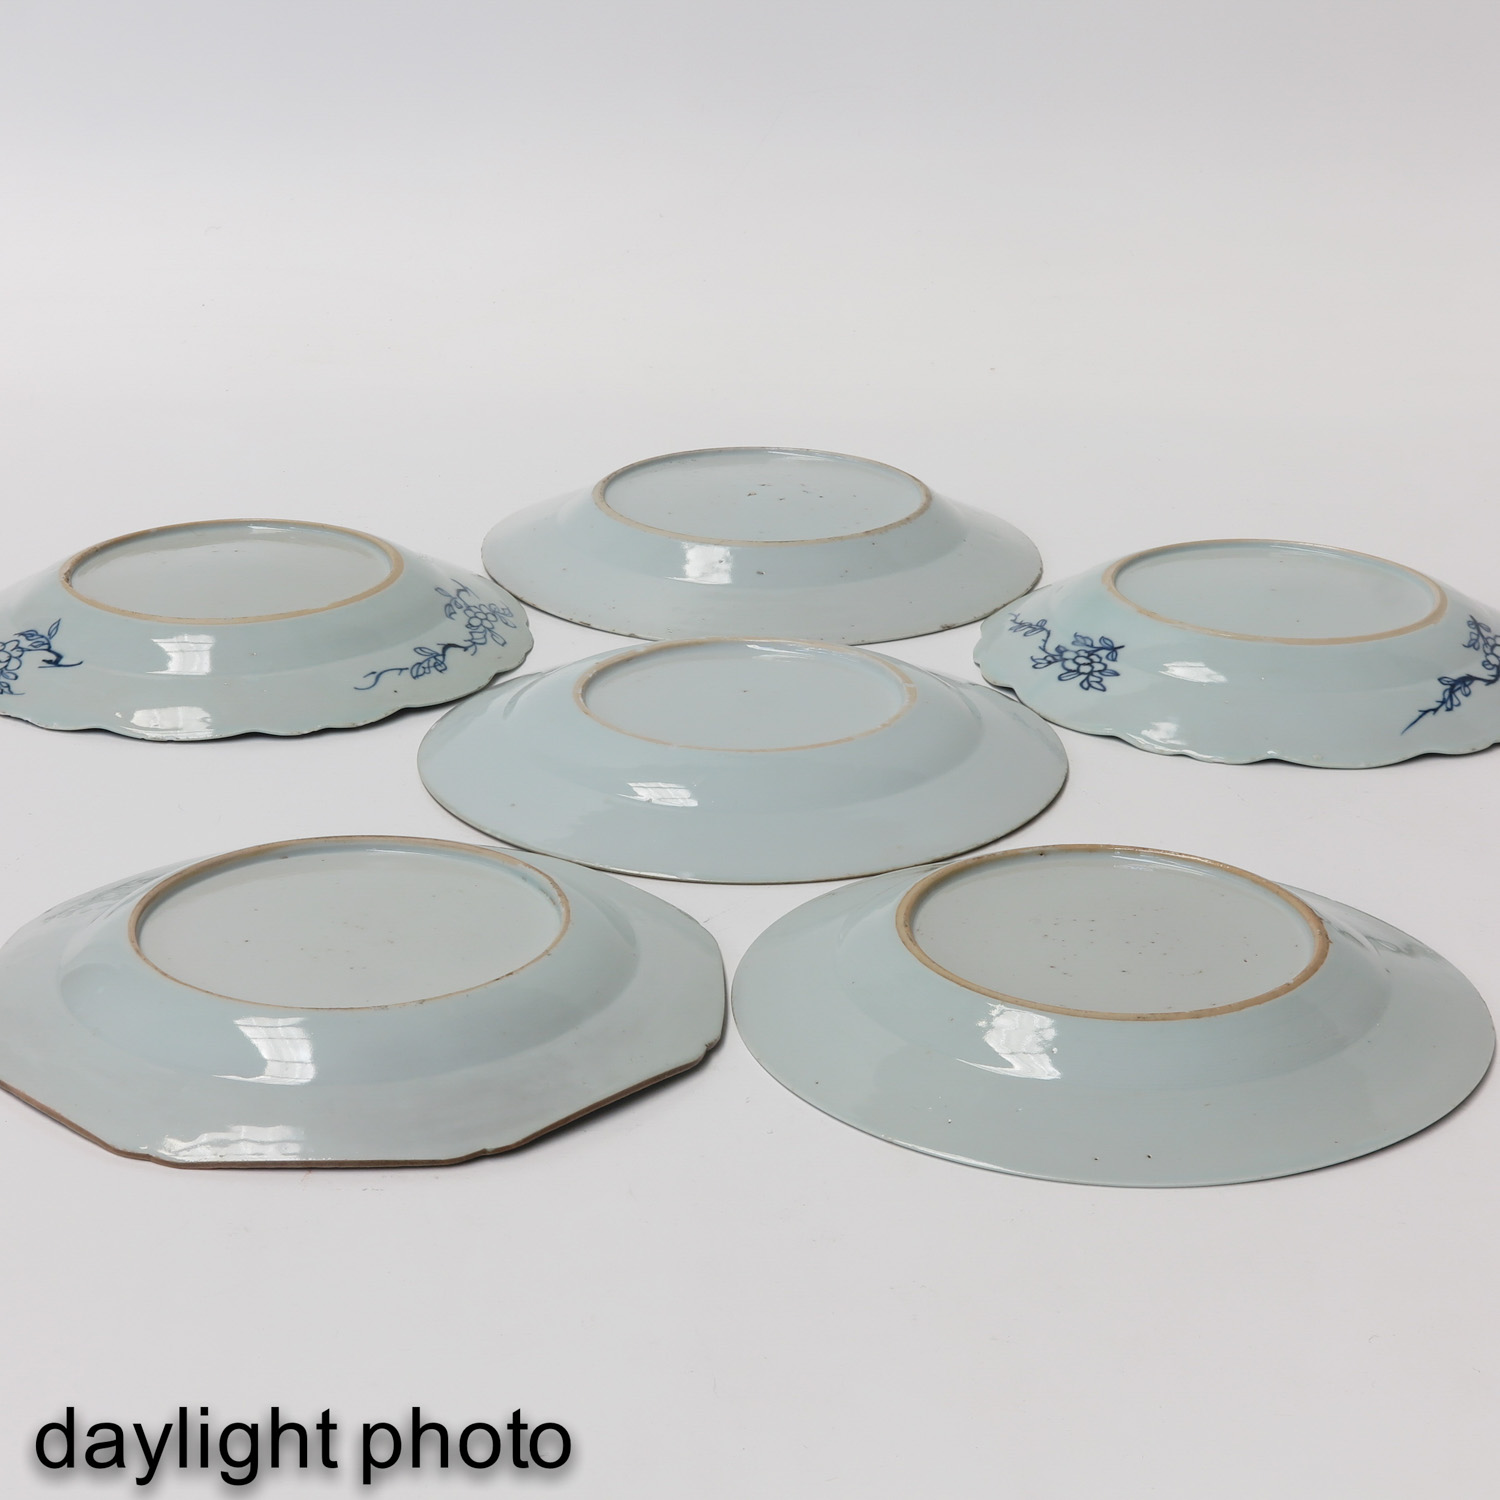 A Set of 6 Blue and White Plates - Image 10 of 10